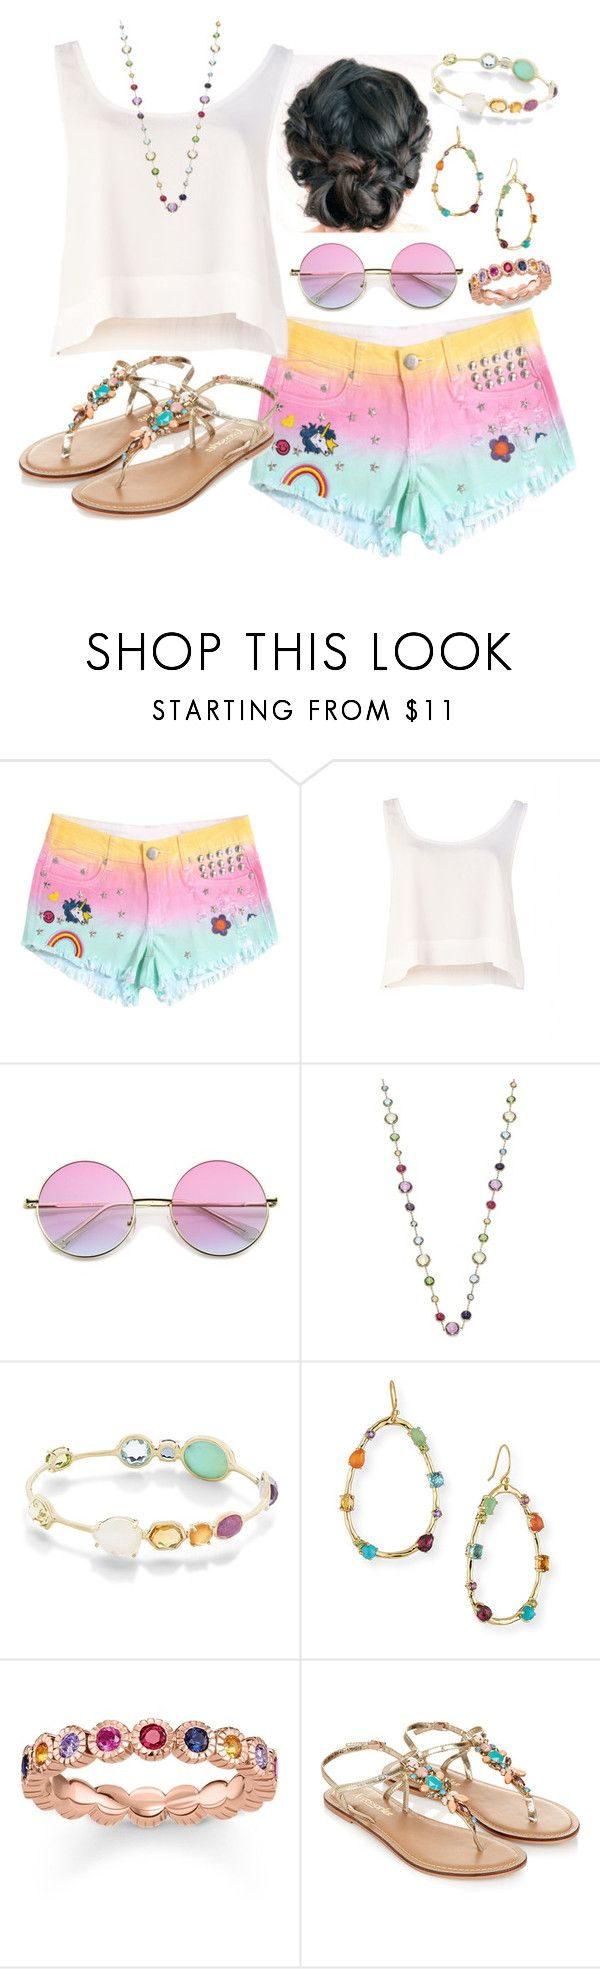 """""""#4"""" by moon-crystal-wolff ❤ liked on Polyvore featuring MINKPINK, Ippolita, Thomas Sabo and Monsoon"""